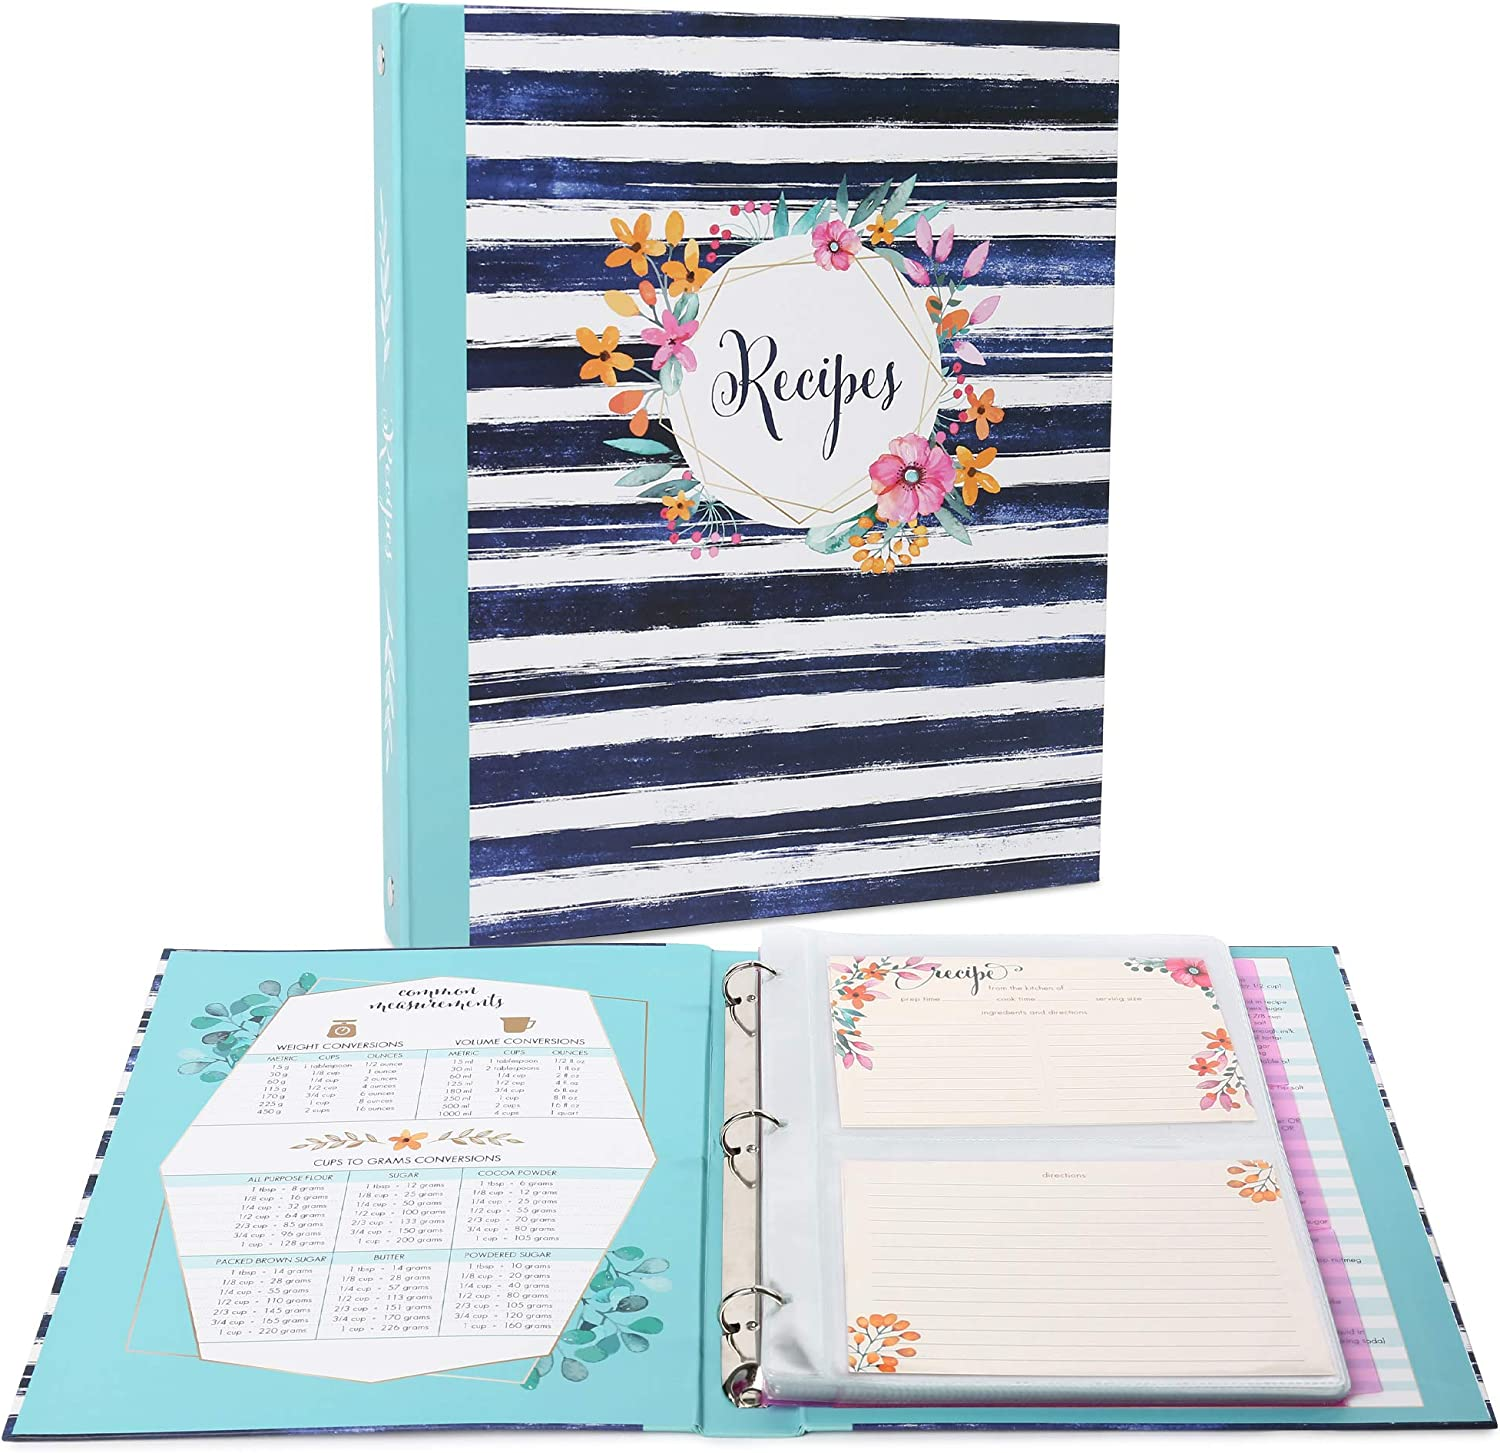 """LotFancy Recipe Binder, 8.5"""" x 10.2"""", with 60 Blank Recipe Cards 4x6, 30 Plastic Page Protectors, 3 Tabbed Dividers, 6 Labels - Kitchen Recipe Card Cookbook Binder Organizer Kit"""